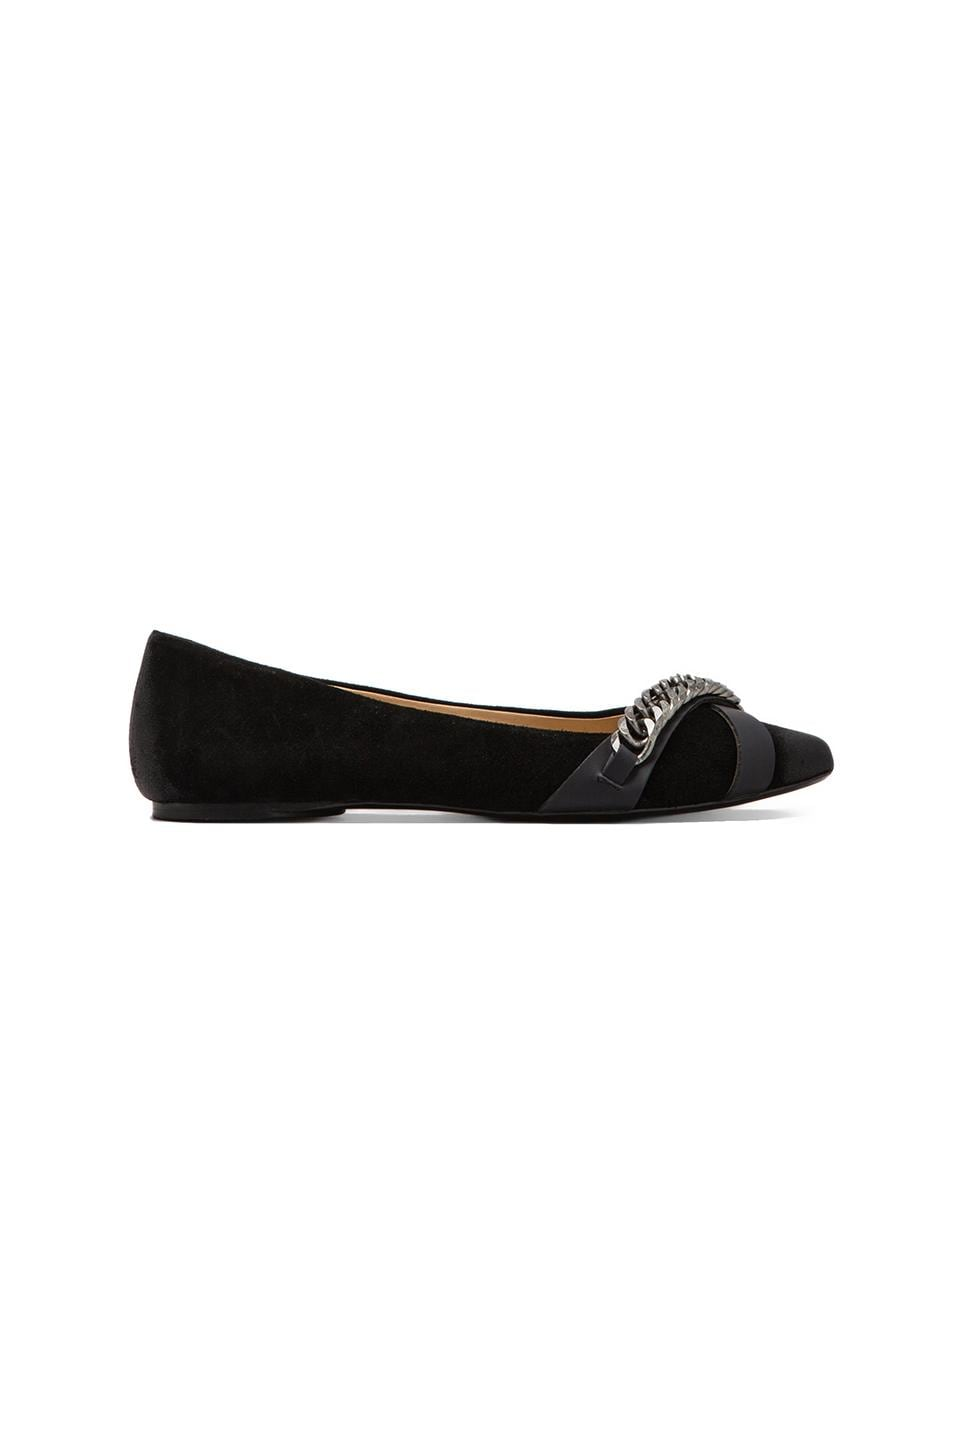 Joe's Jeans Josie Flat in Black